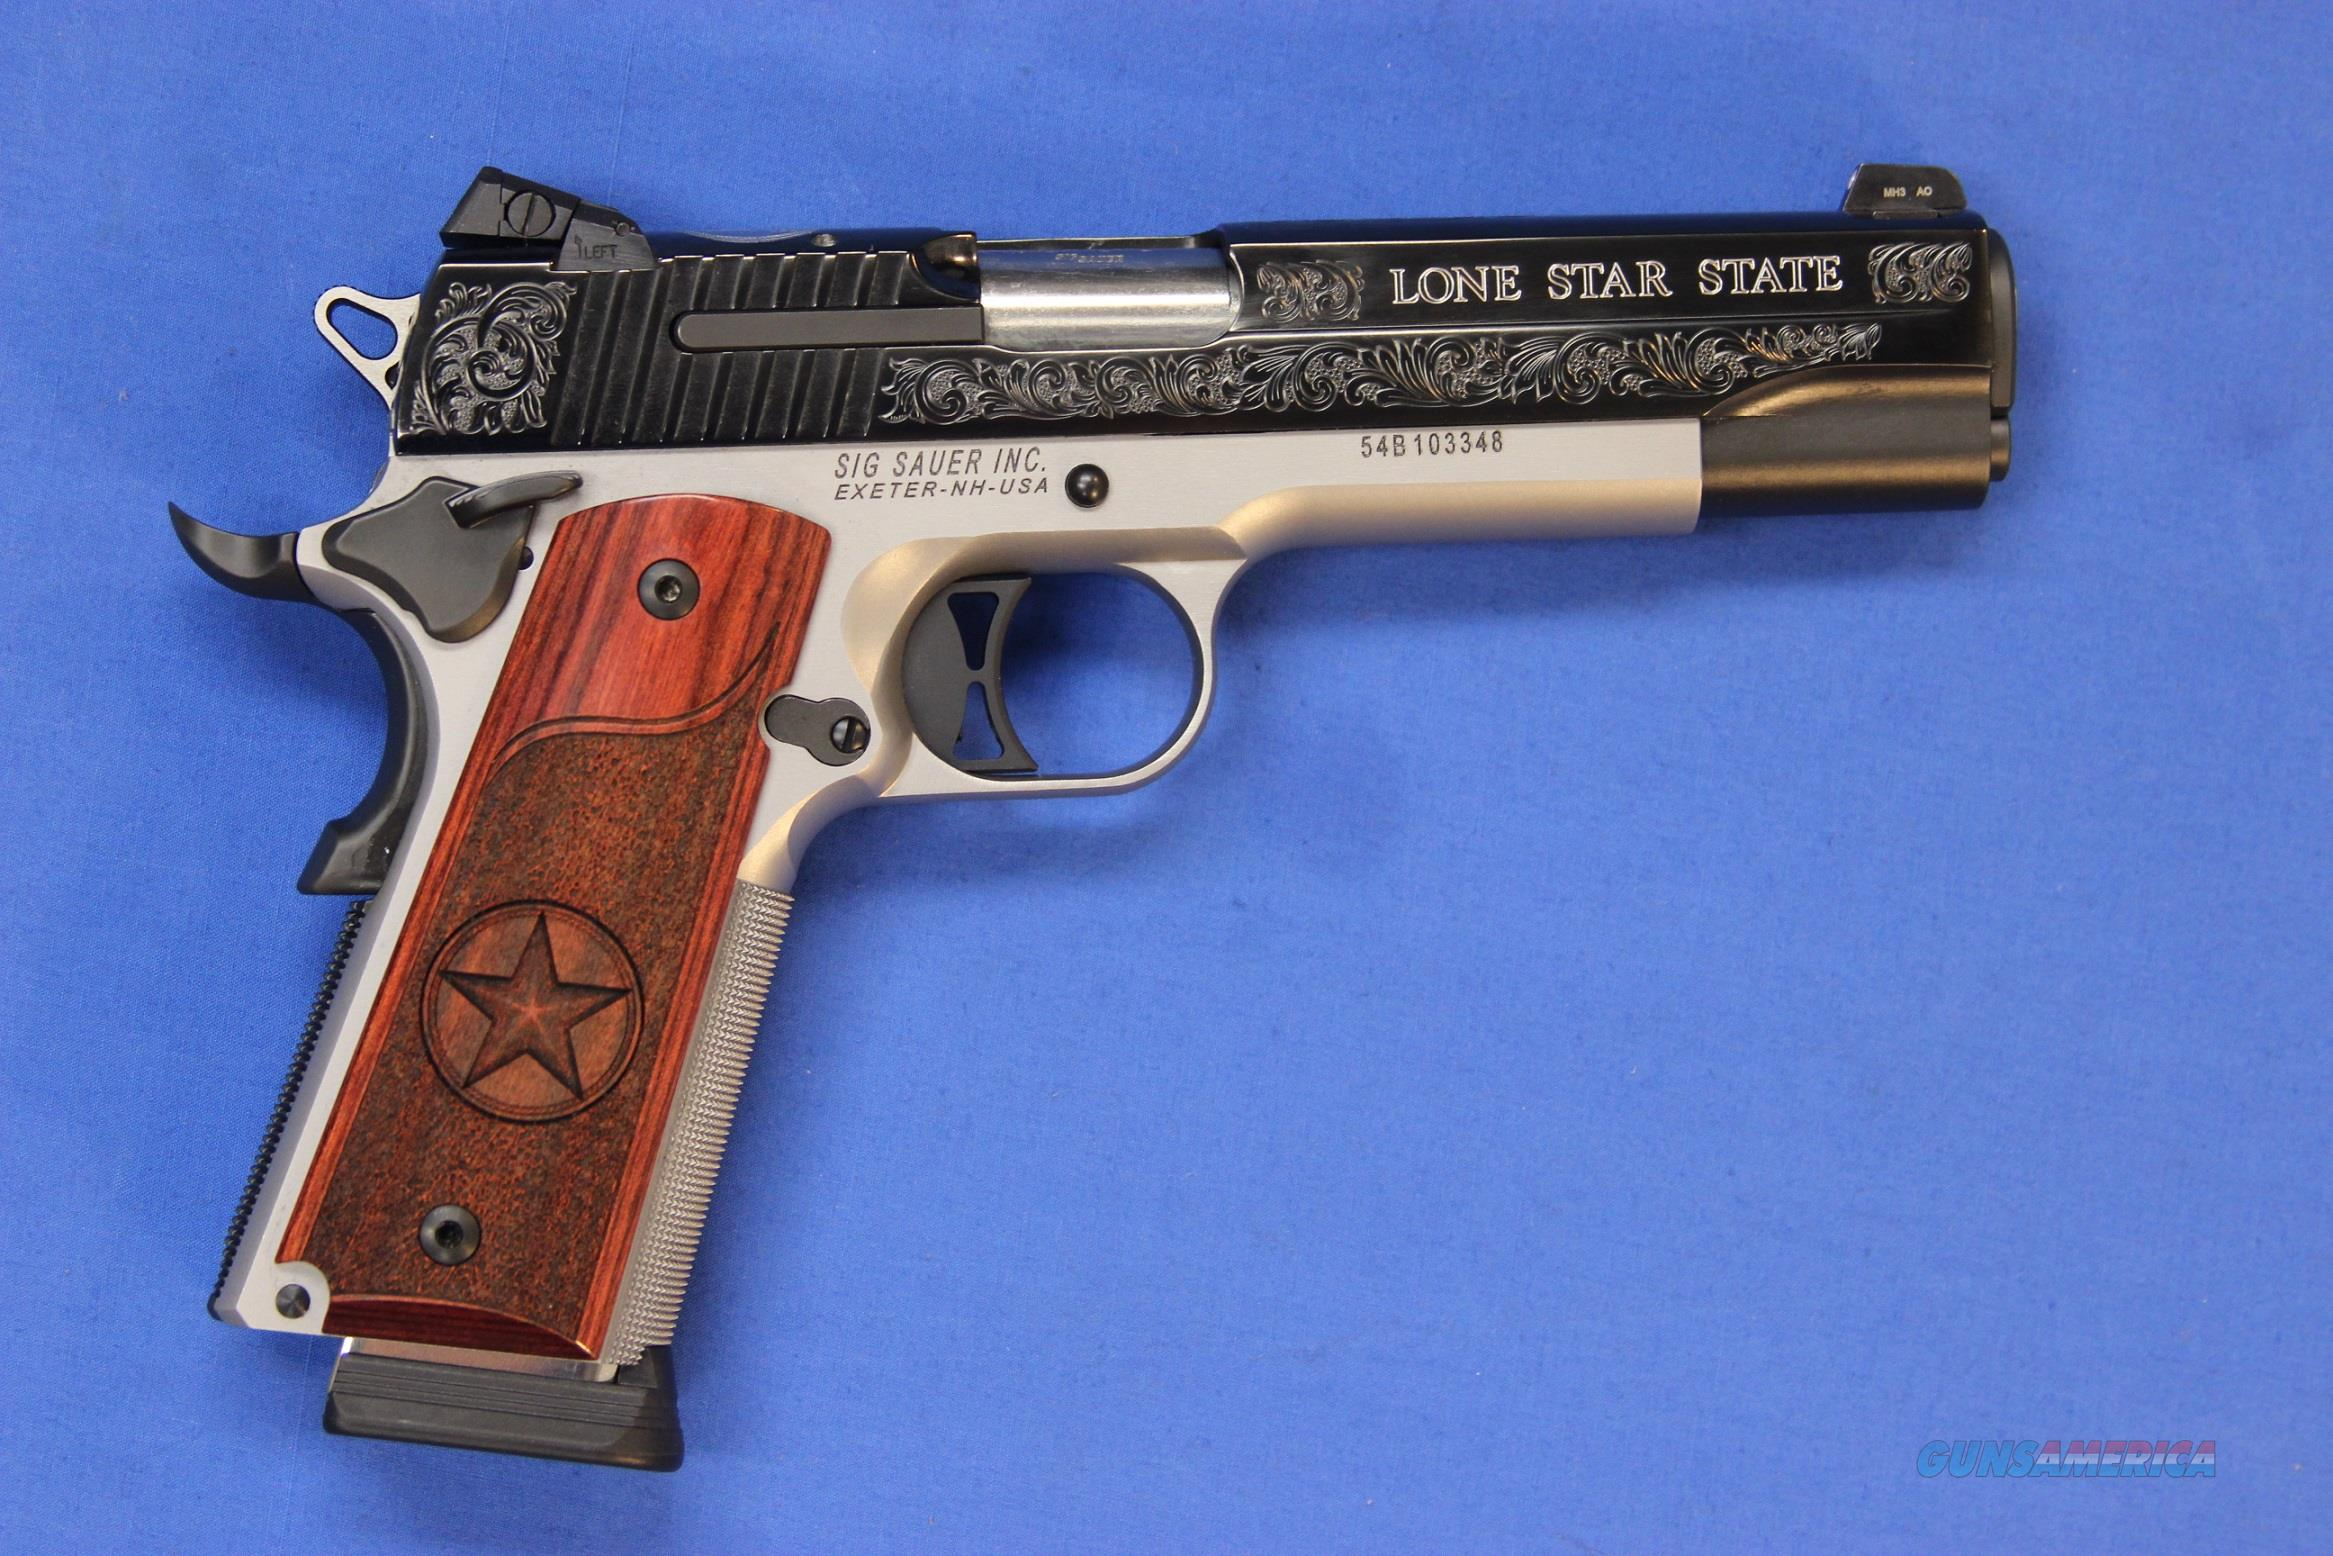 SIG SAUER 1911 TEXAS SILVER STAR .45 ACP - NEW!  Guns > Pistols > Sig - Sauer/Sigarms Pistols > 1911